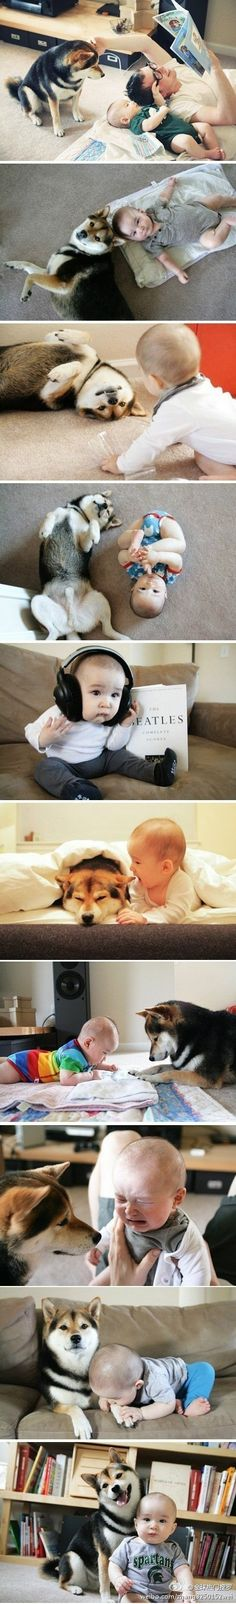 baby & dog~ oh my goddddd, the most precious thing everrrrrrrrr